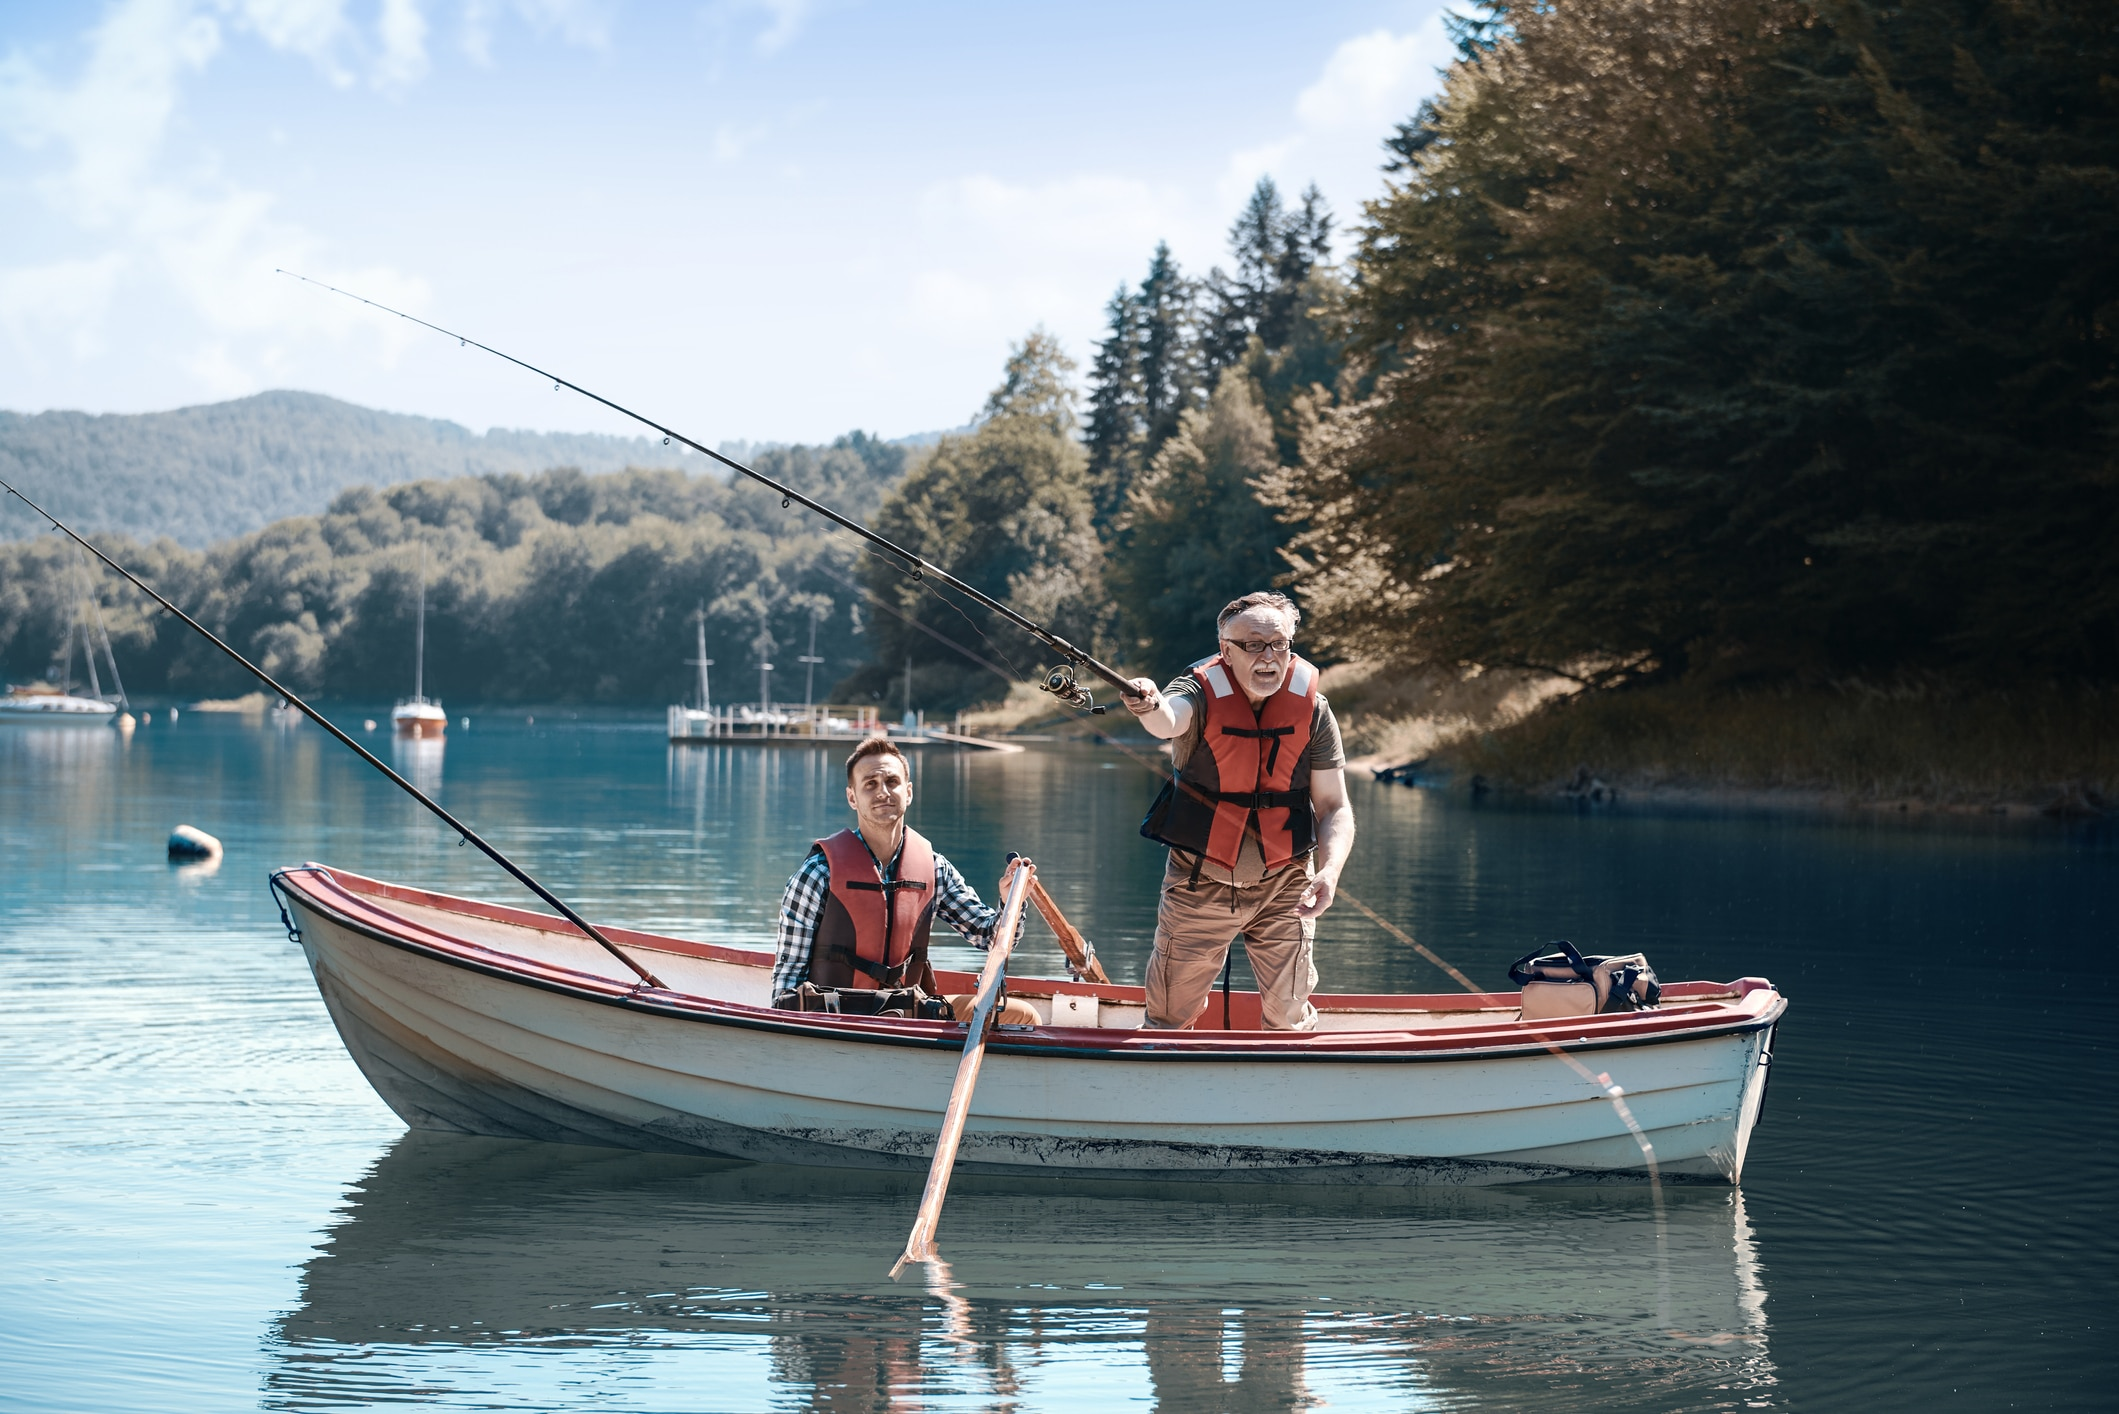 Senior man and 30-something guy in a row boat.